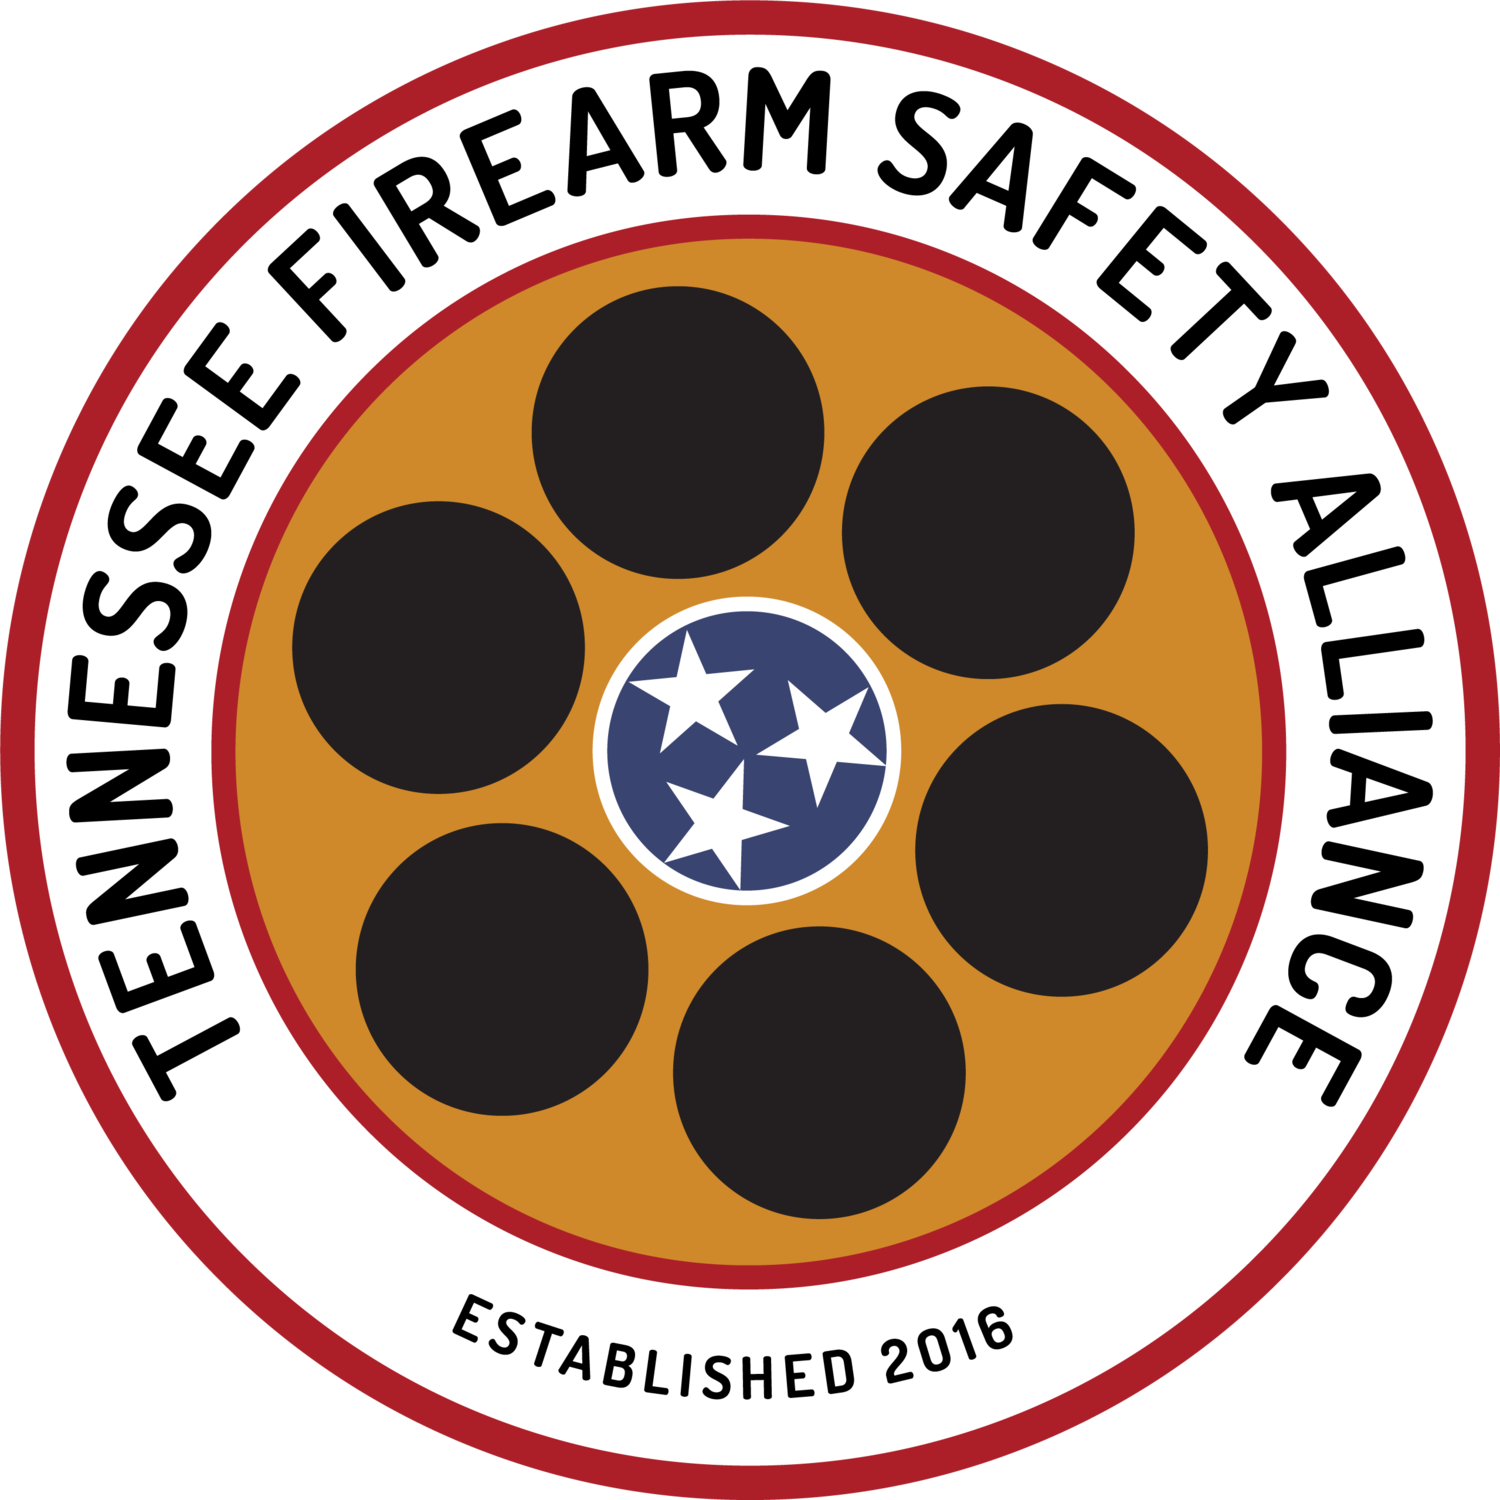 Tennessee Firearm Safety Alliance